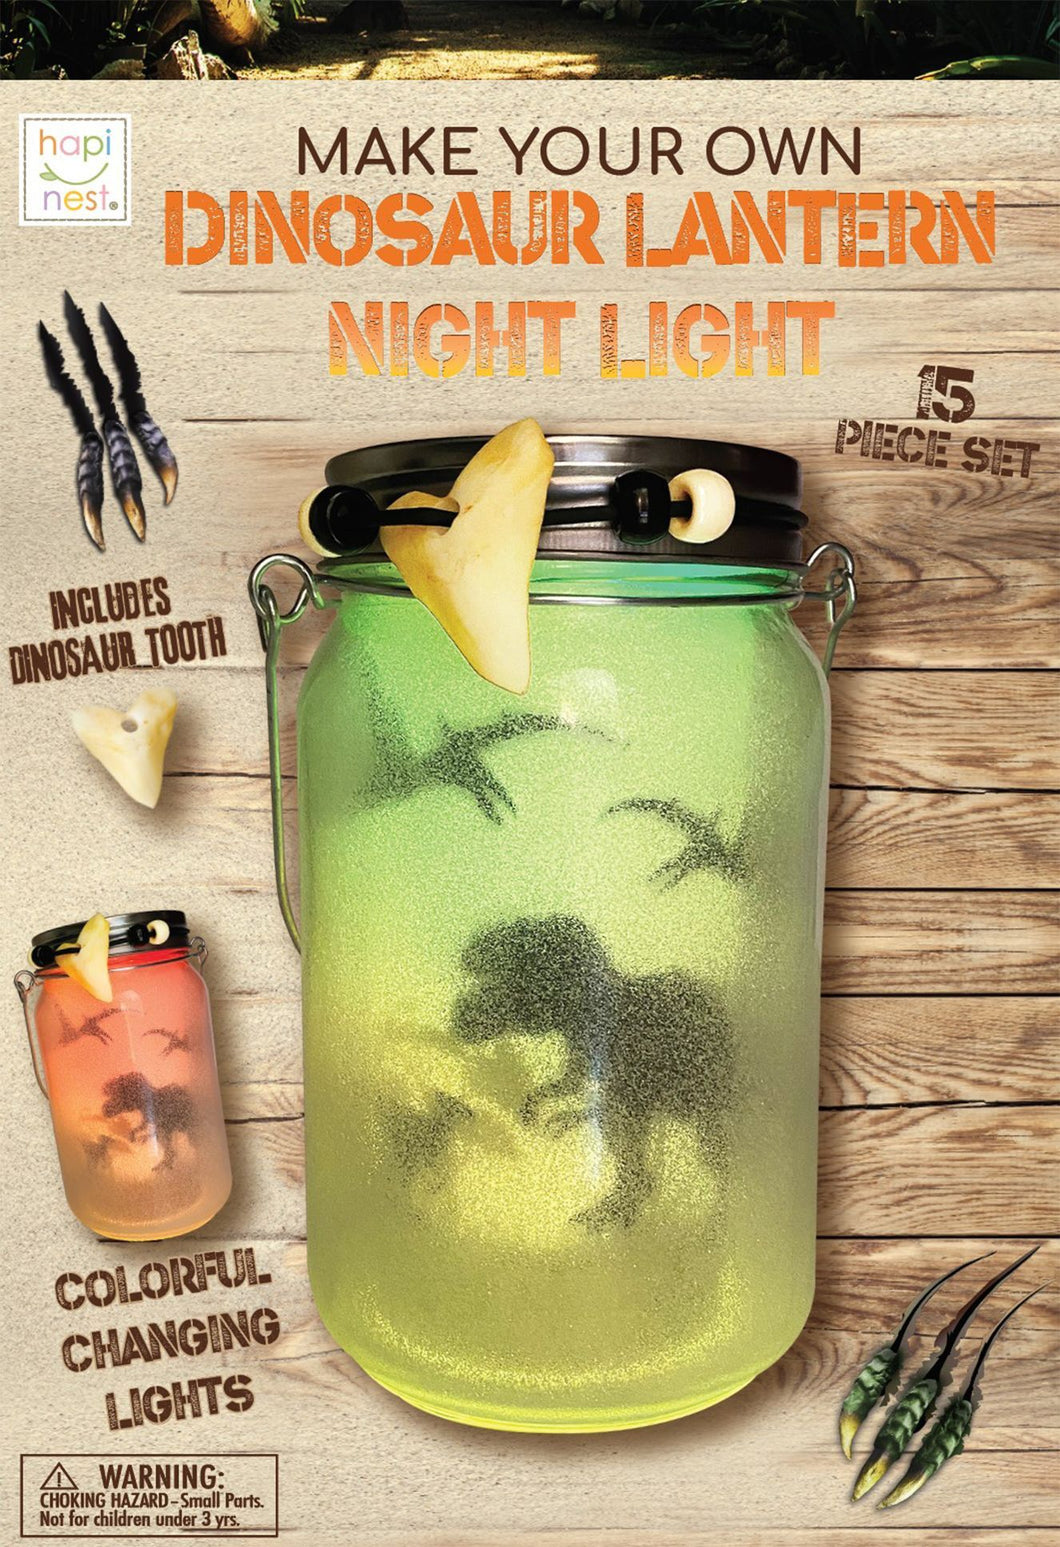 DIY Dinosaur Toy Lantern Night Light Kit